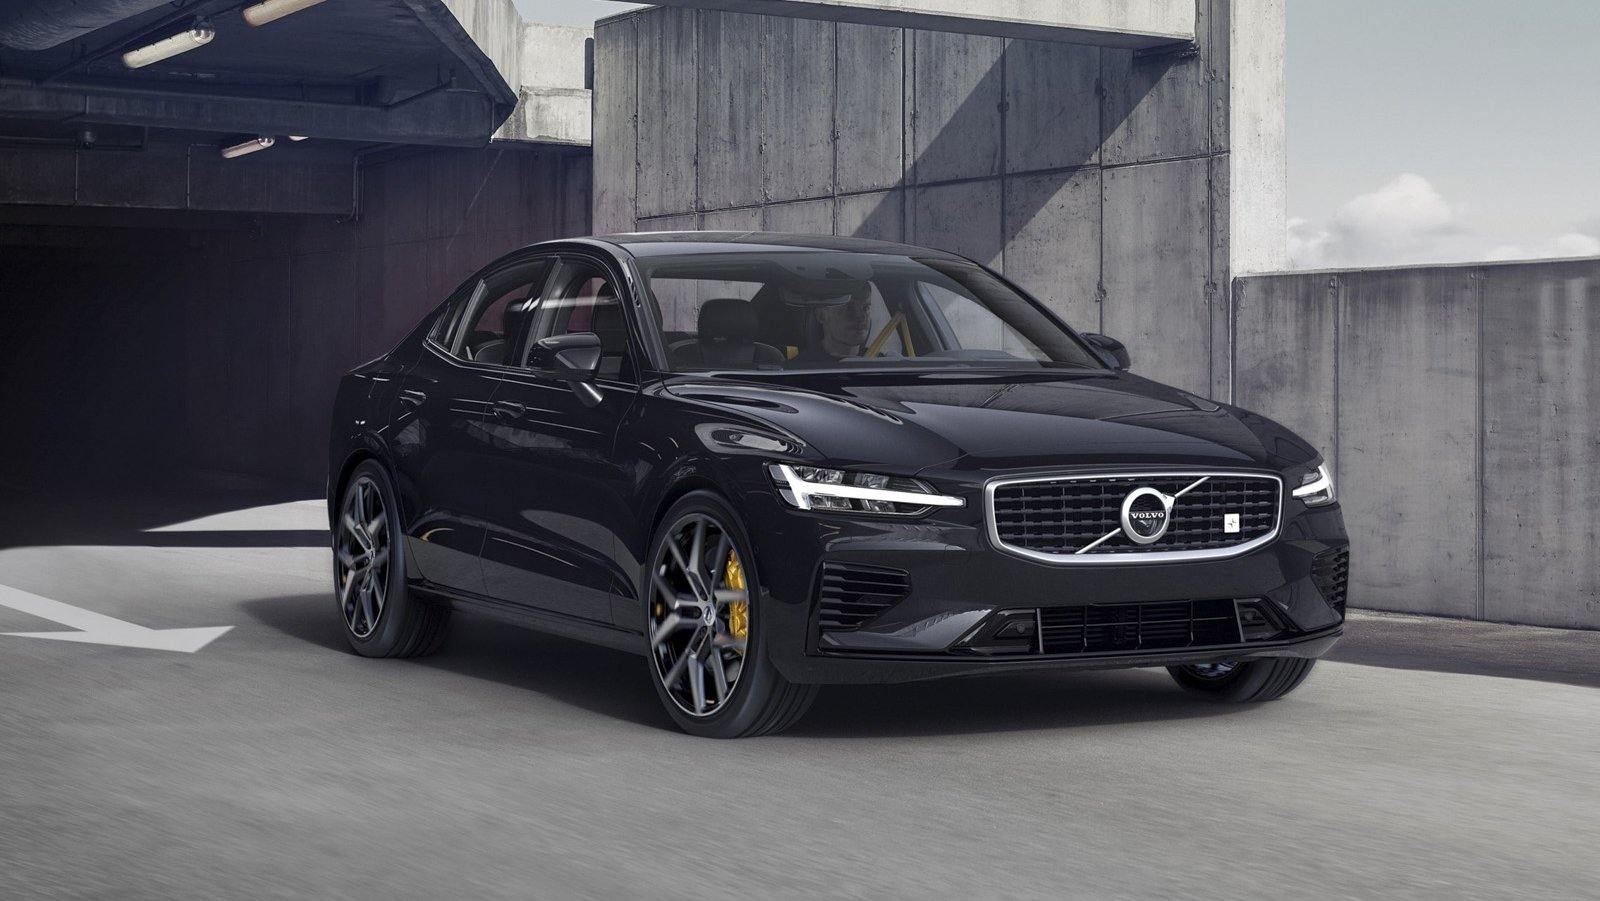 5 Things Polestar Engineered Did To Make Volvo S60 The Opposite Of Political Correctness